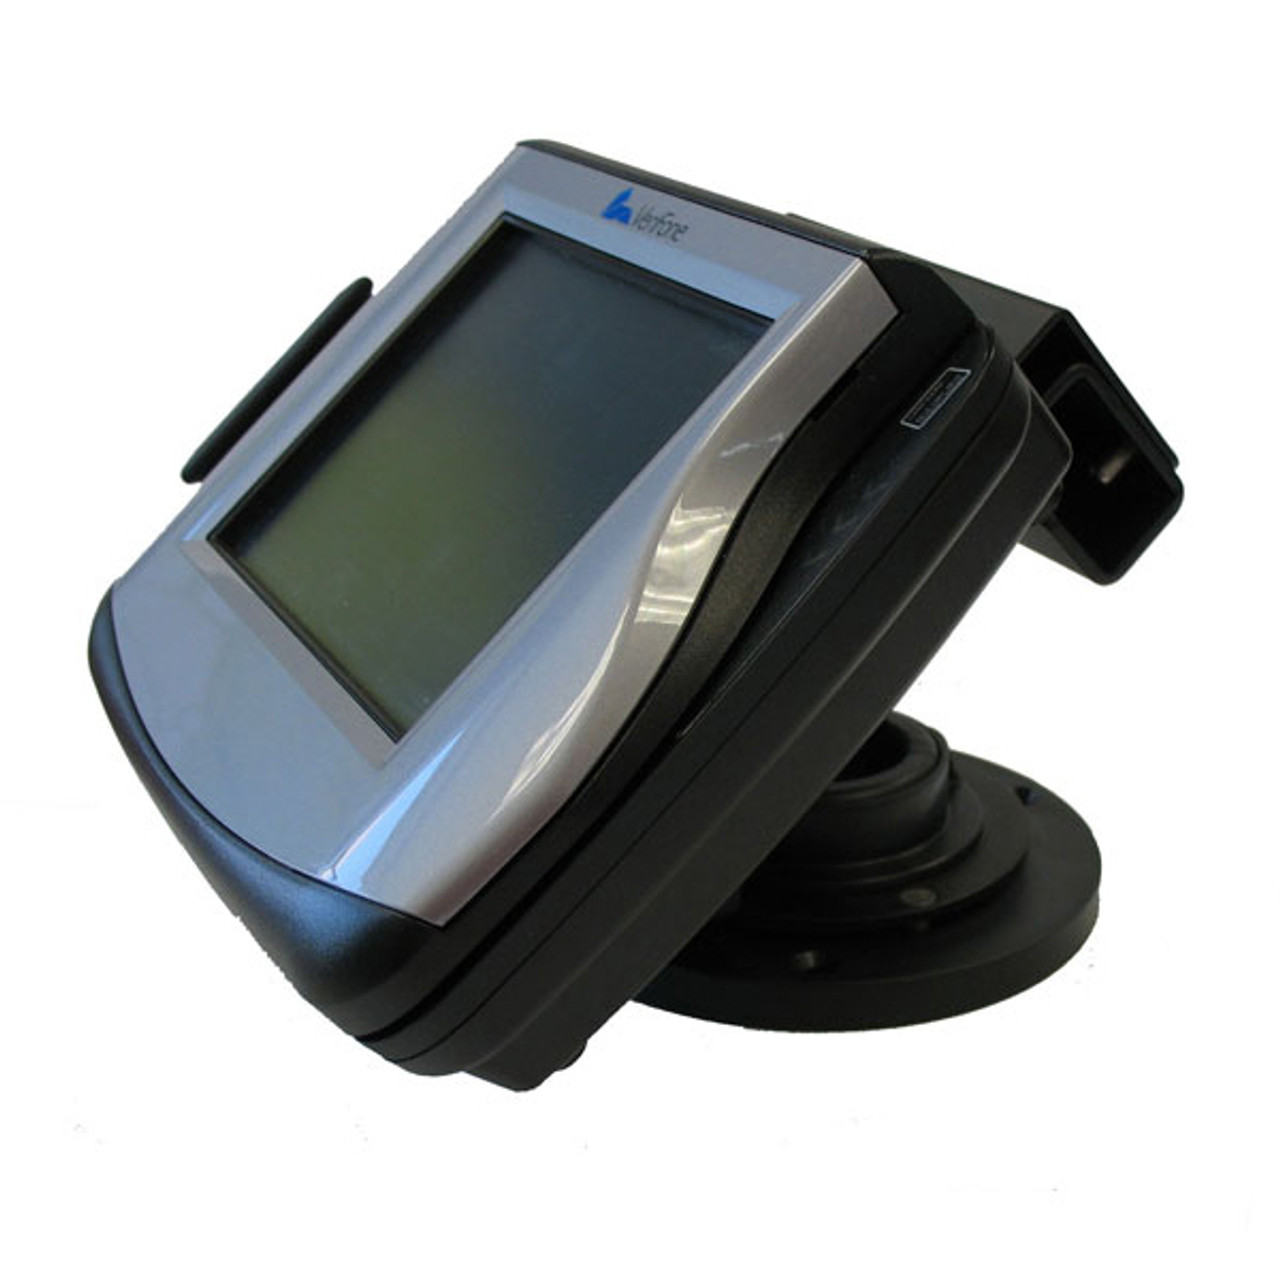 Verifone MX860 Credit Card Stand Locking Low Profile by Swivel Stands